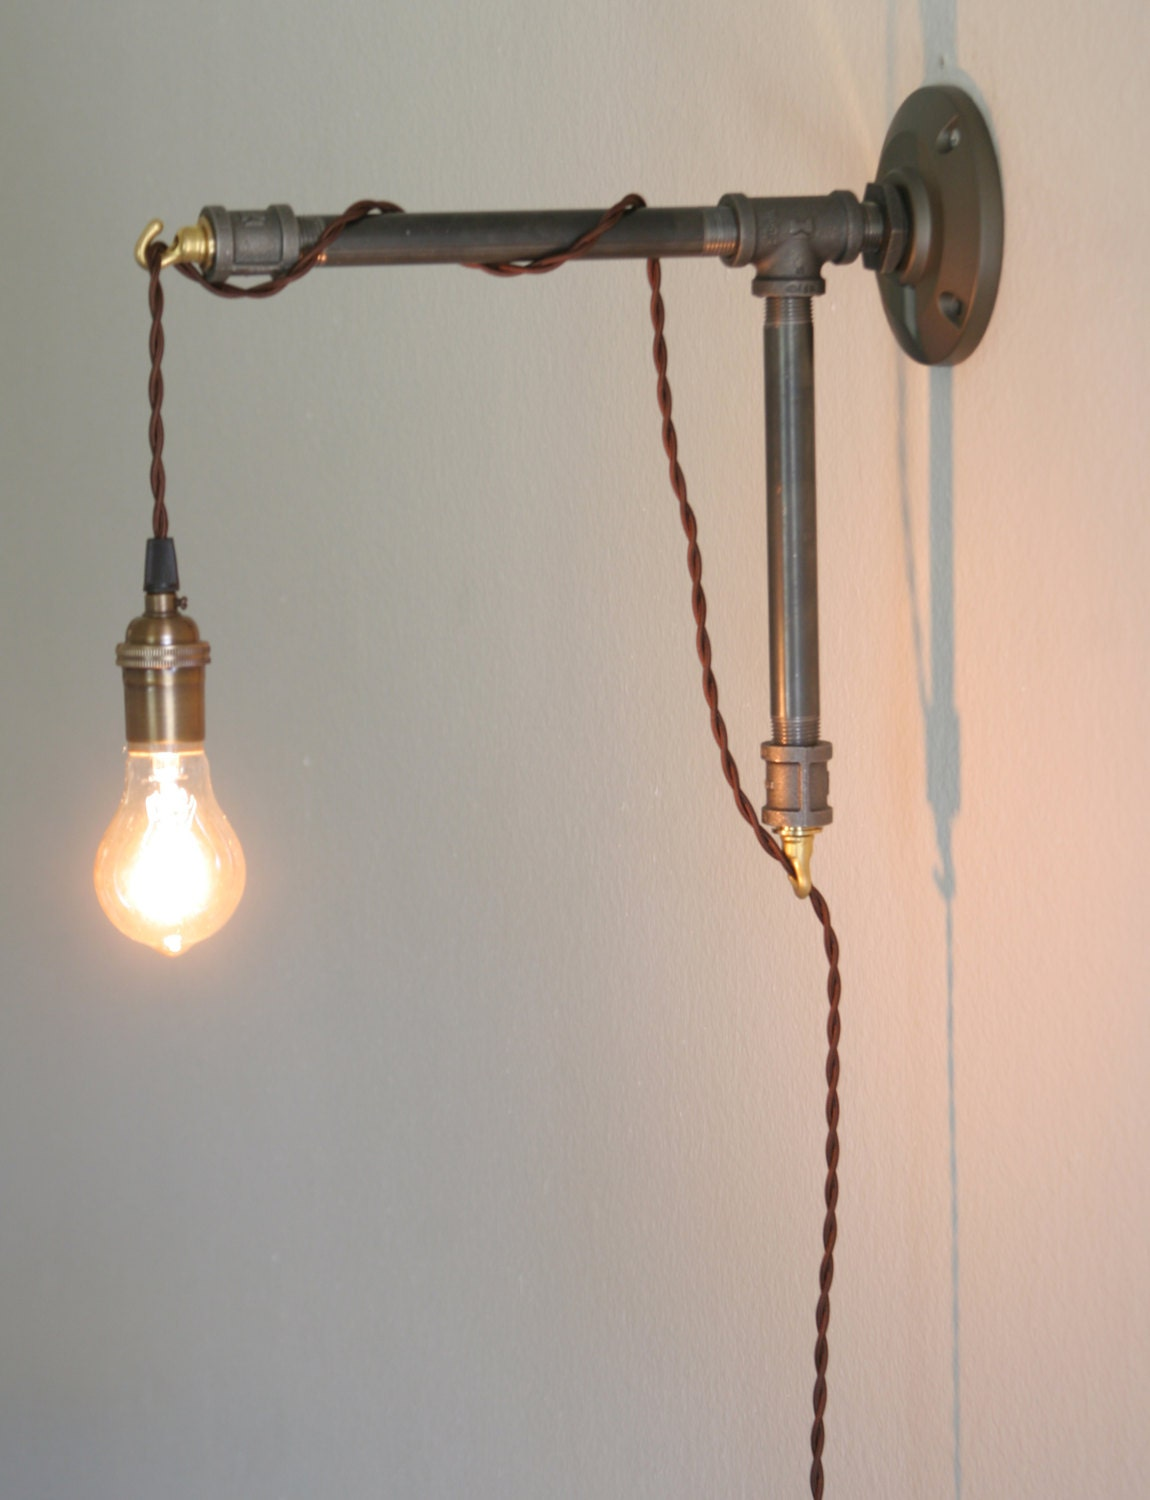 Industrial Looking Wall Sconces : Industrial Style Wall Sconce Iron pipe bracket by Dancingapple